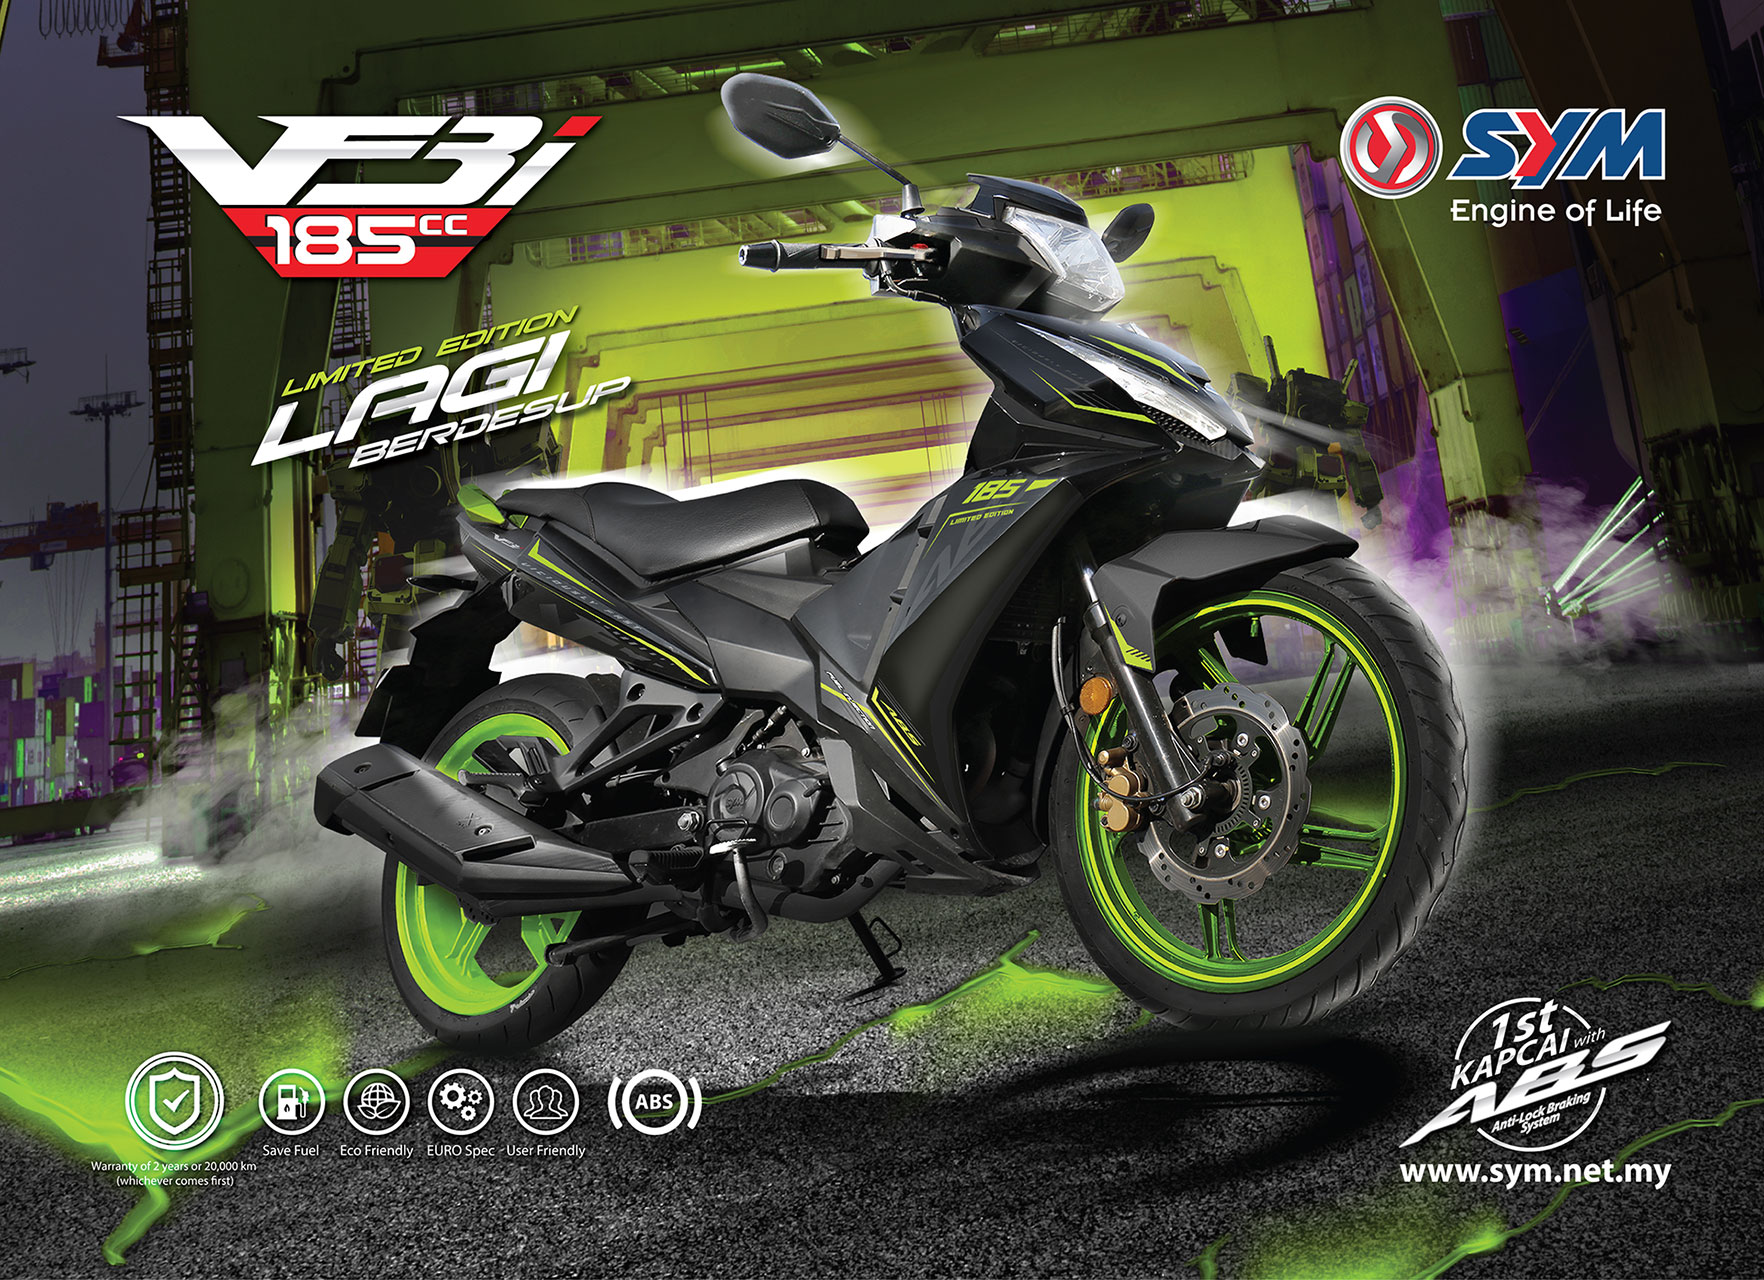 Press Release - New Model - SYM VF3i 185 LE